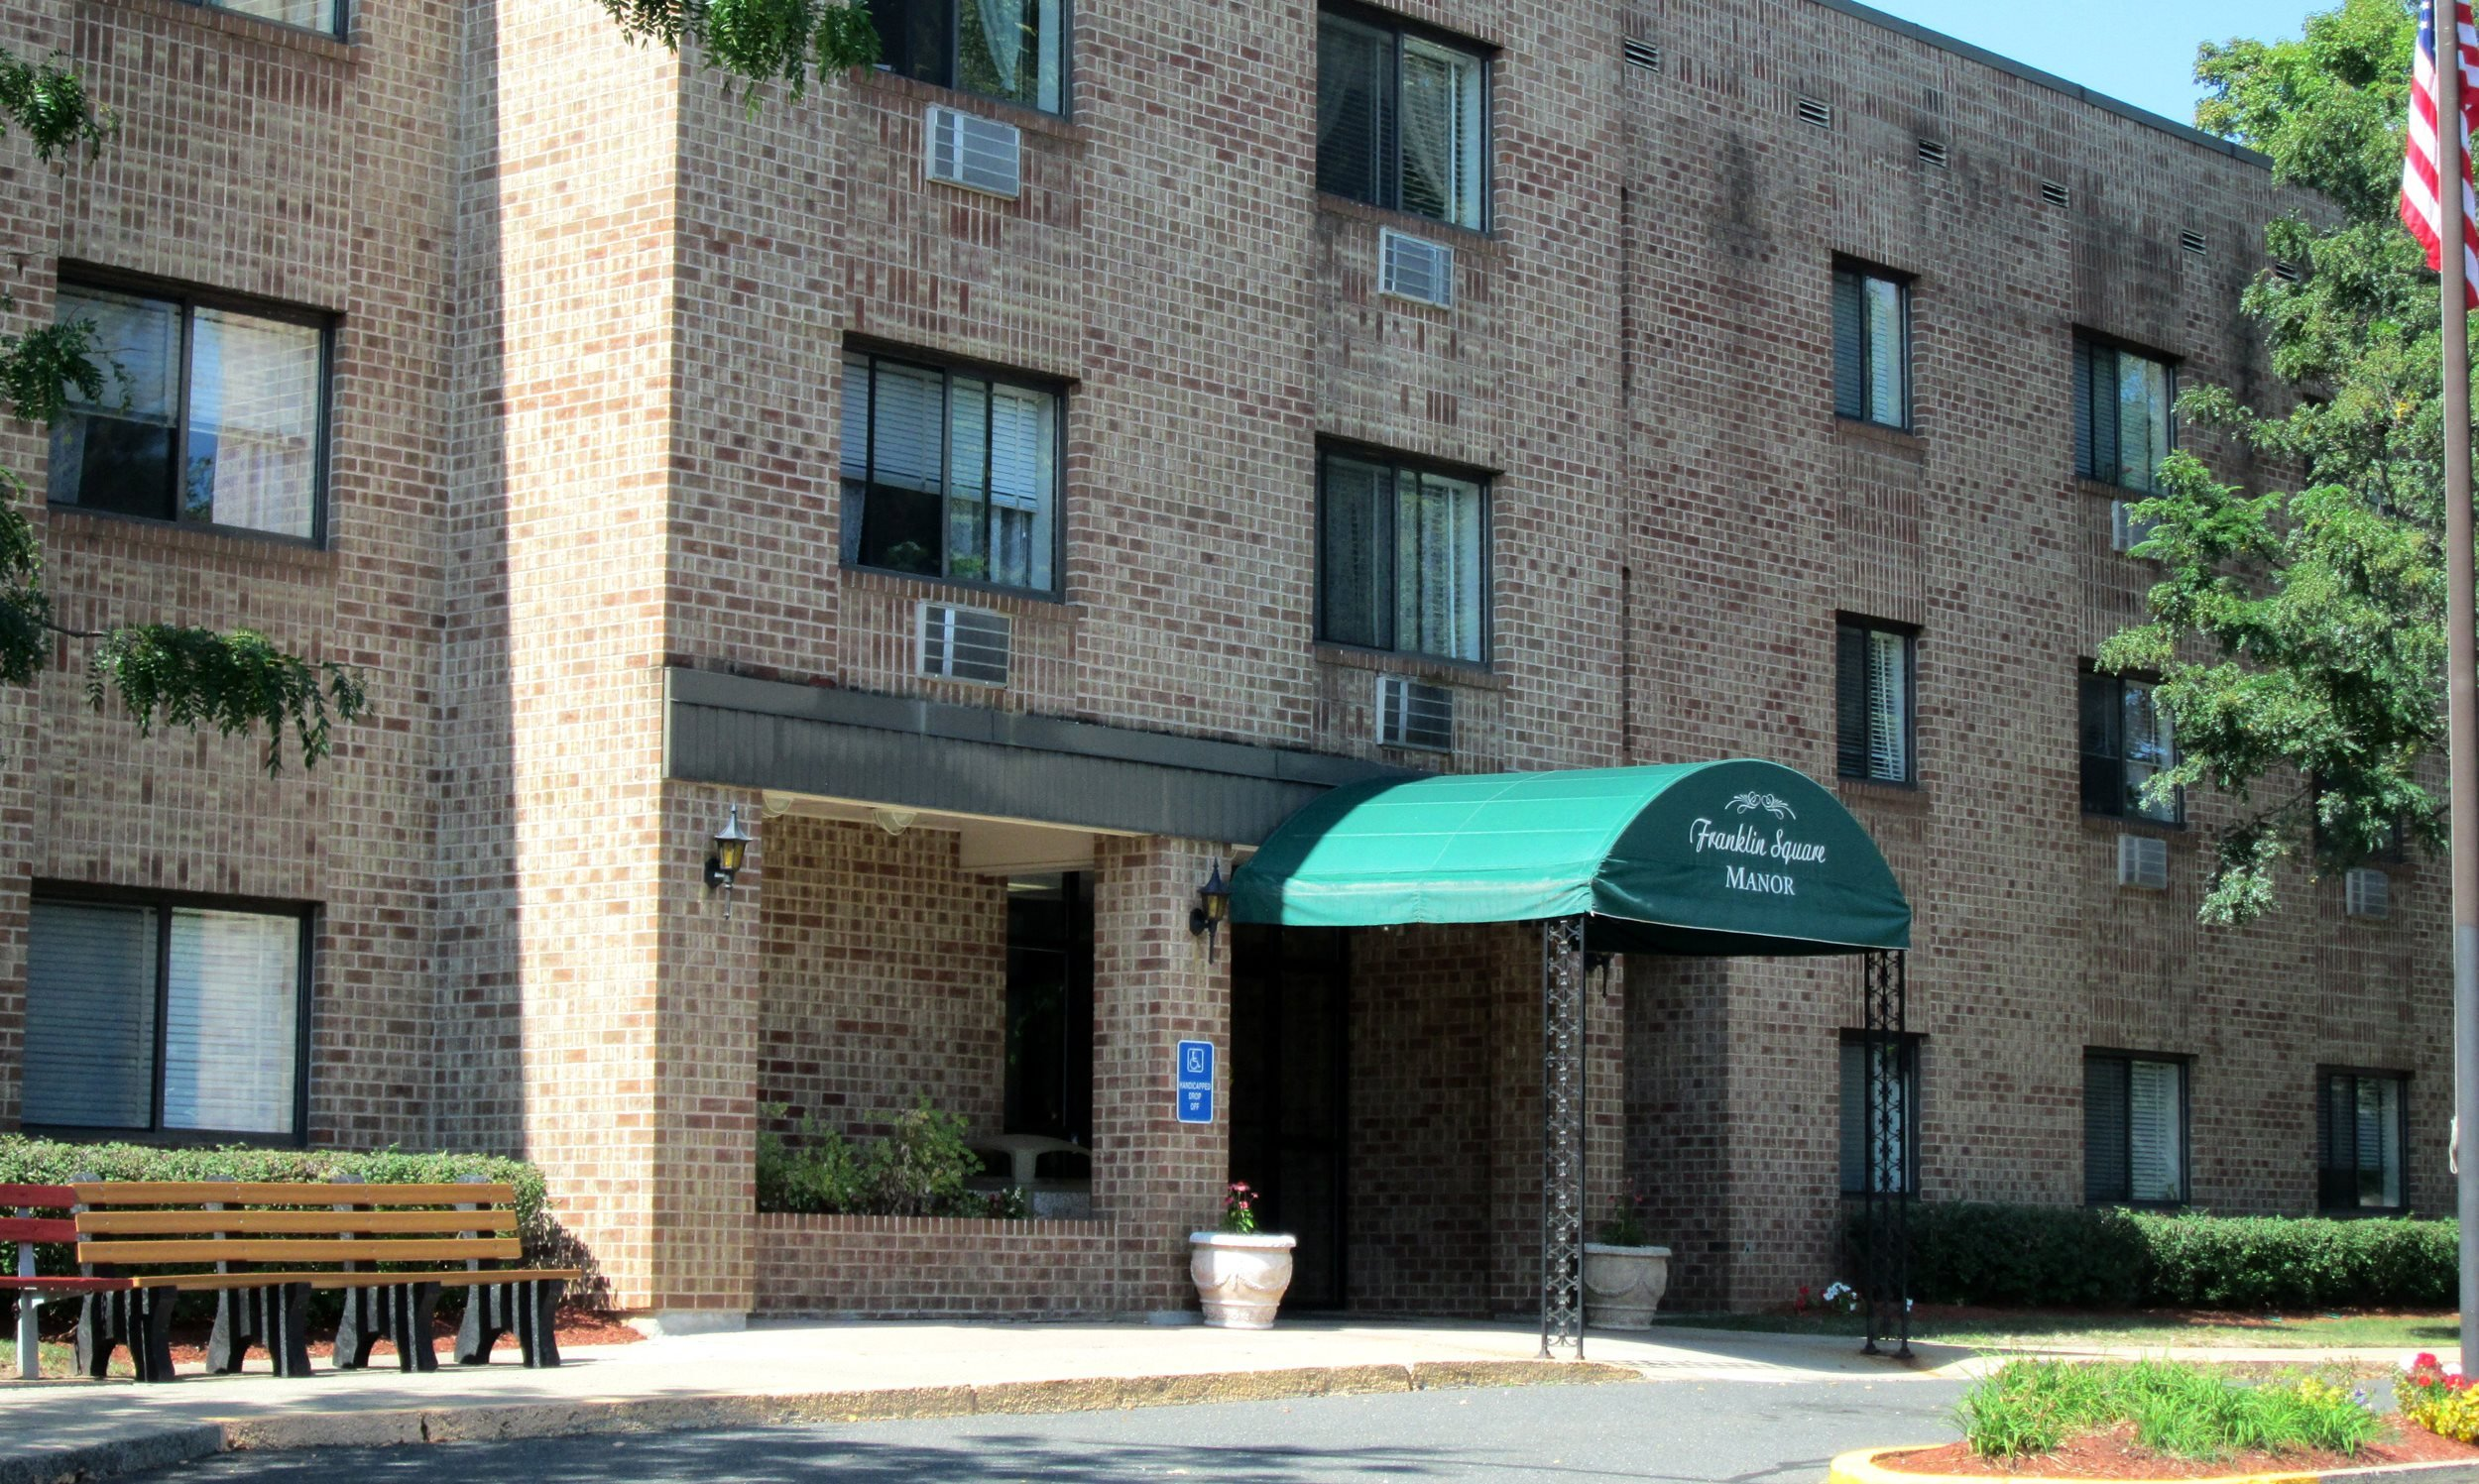 Franklin Square Manor Apartments in New Britain, CT